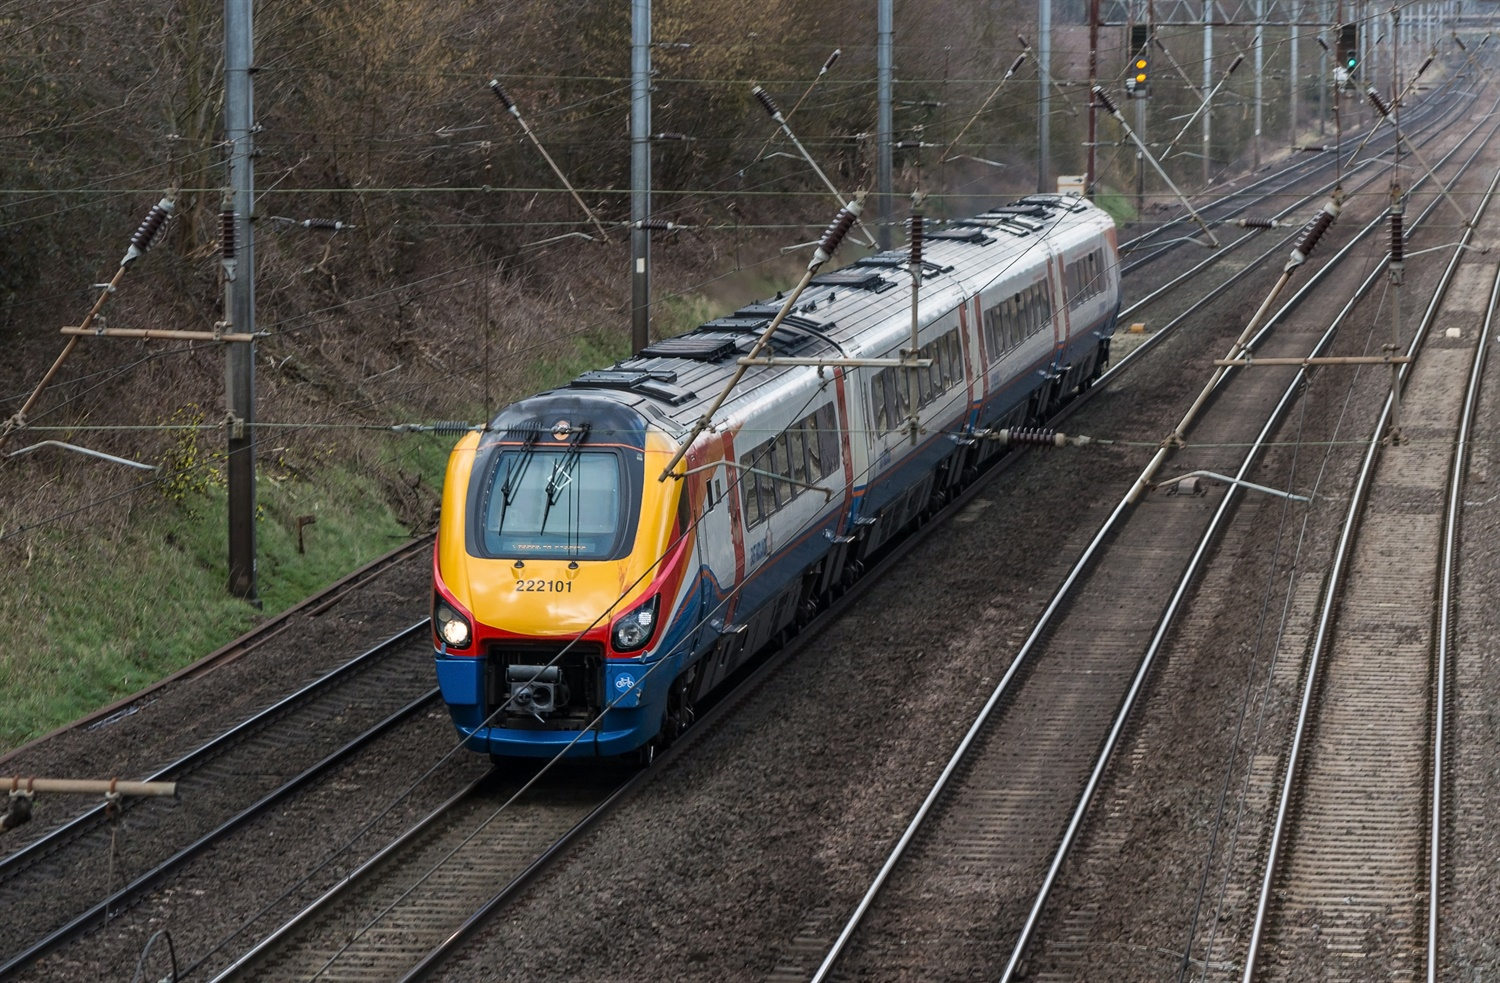 DfT publishes ITT for East Midlands franchise bidders